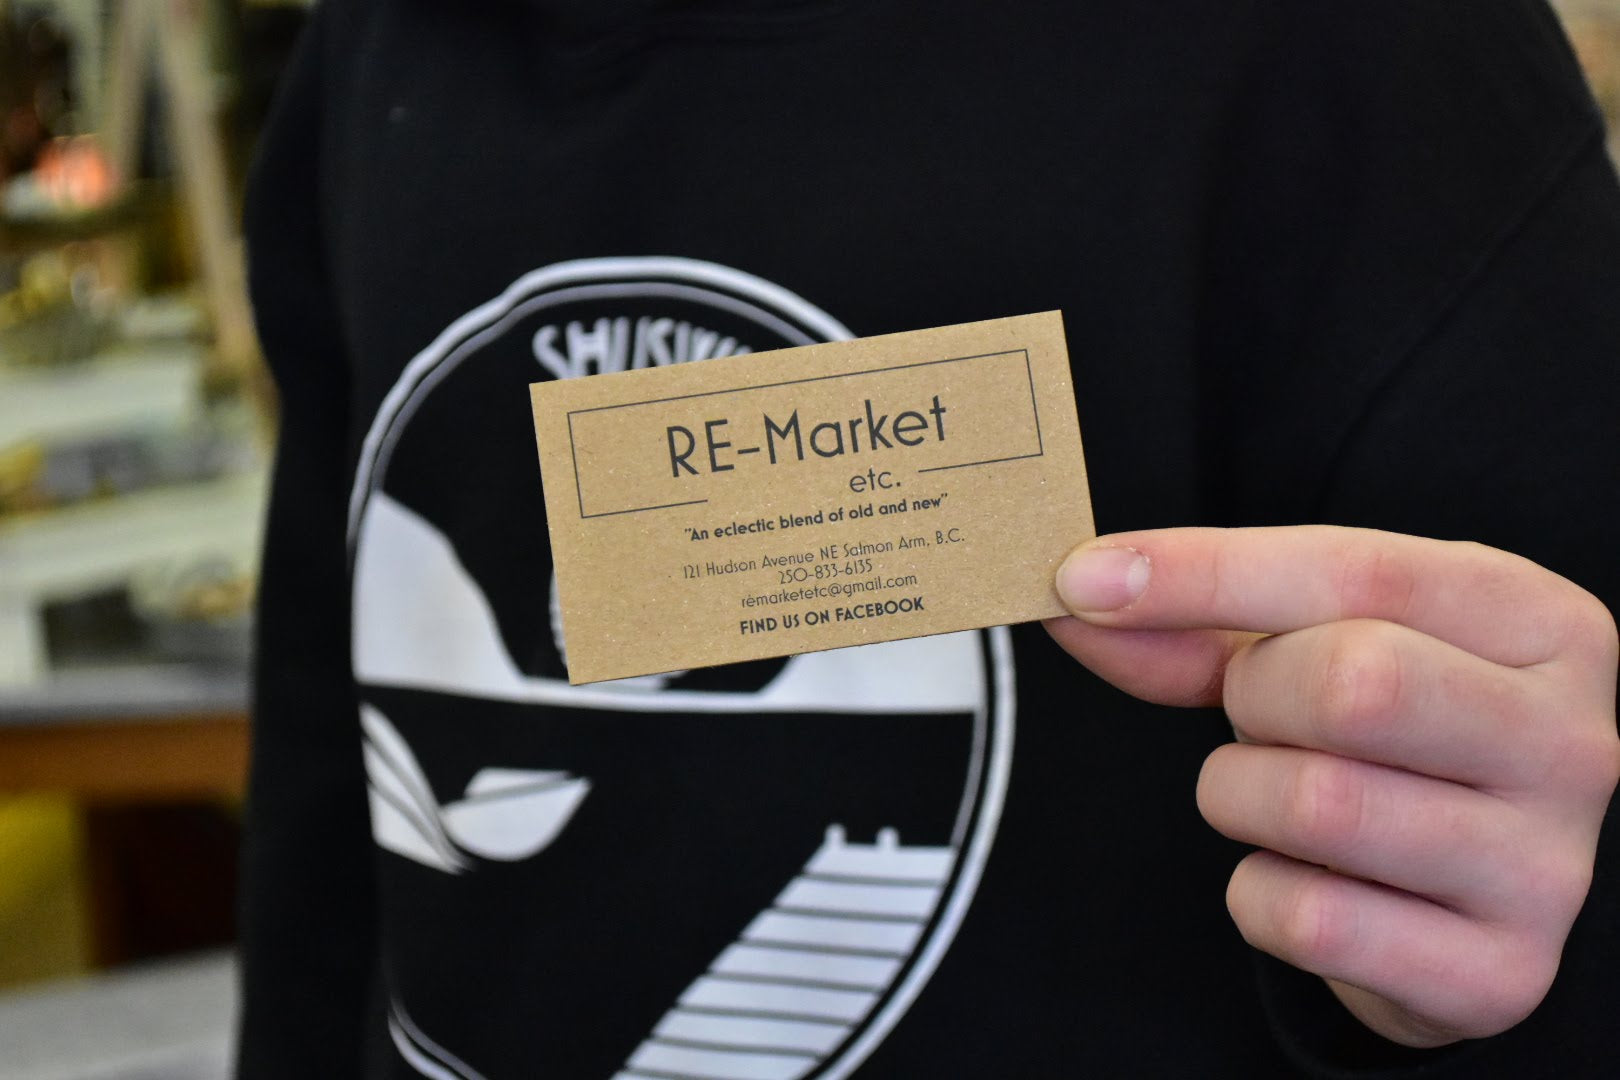 We're excited to partner with RE Market in Salmon Arm